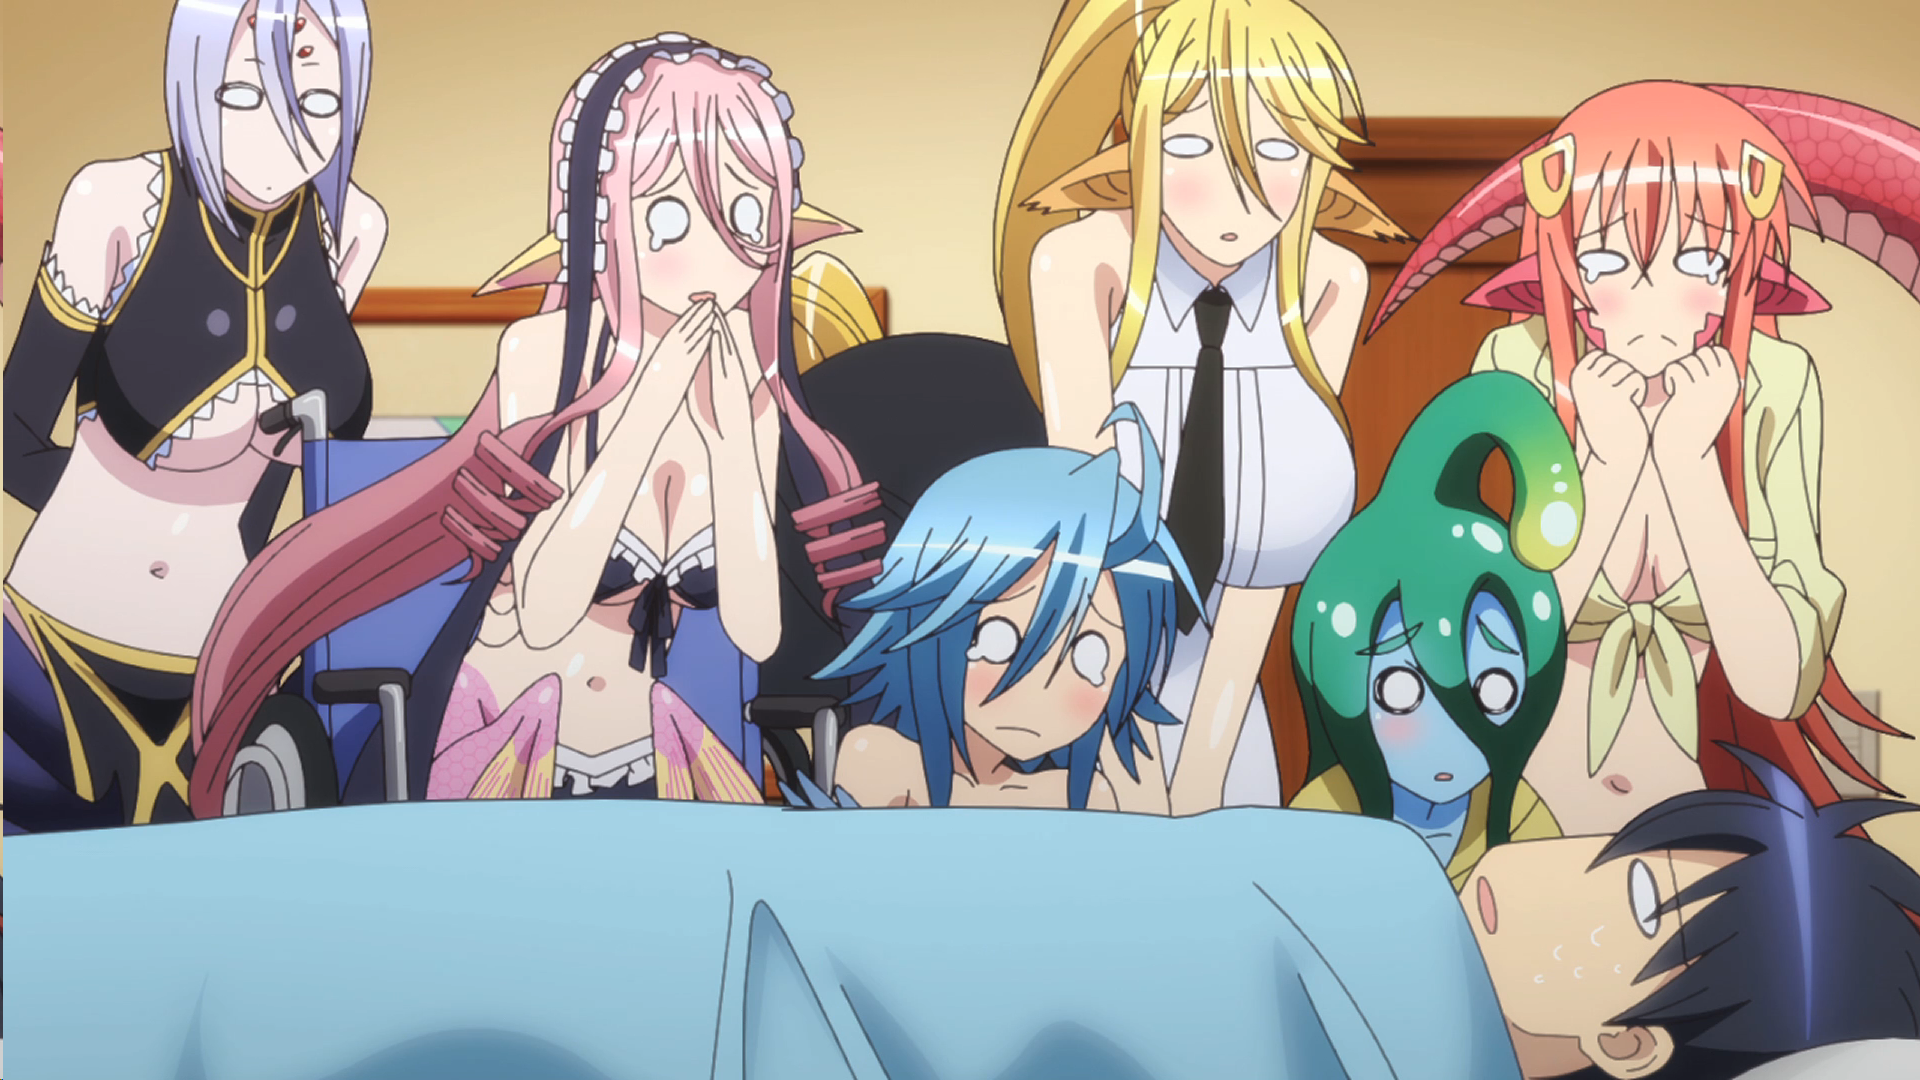 The girls of Monster Musume: Everyday Life with Monsters, take care of Kimihito while he's sick.